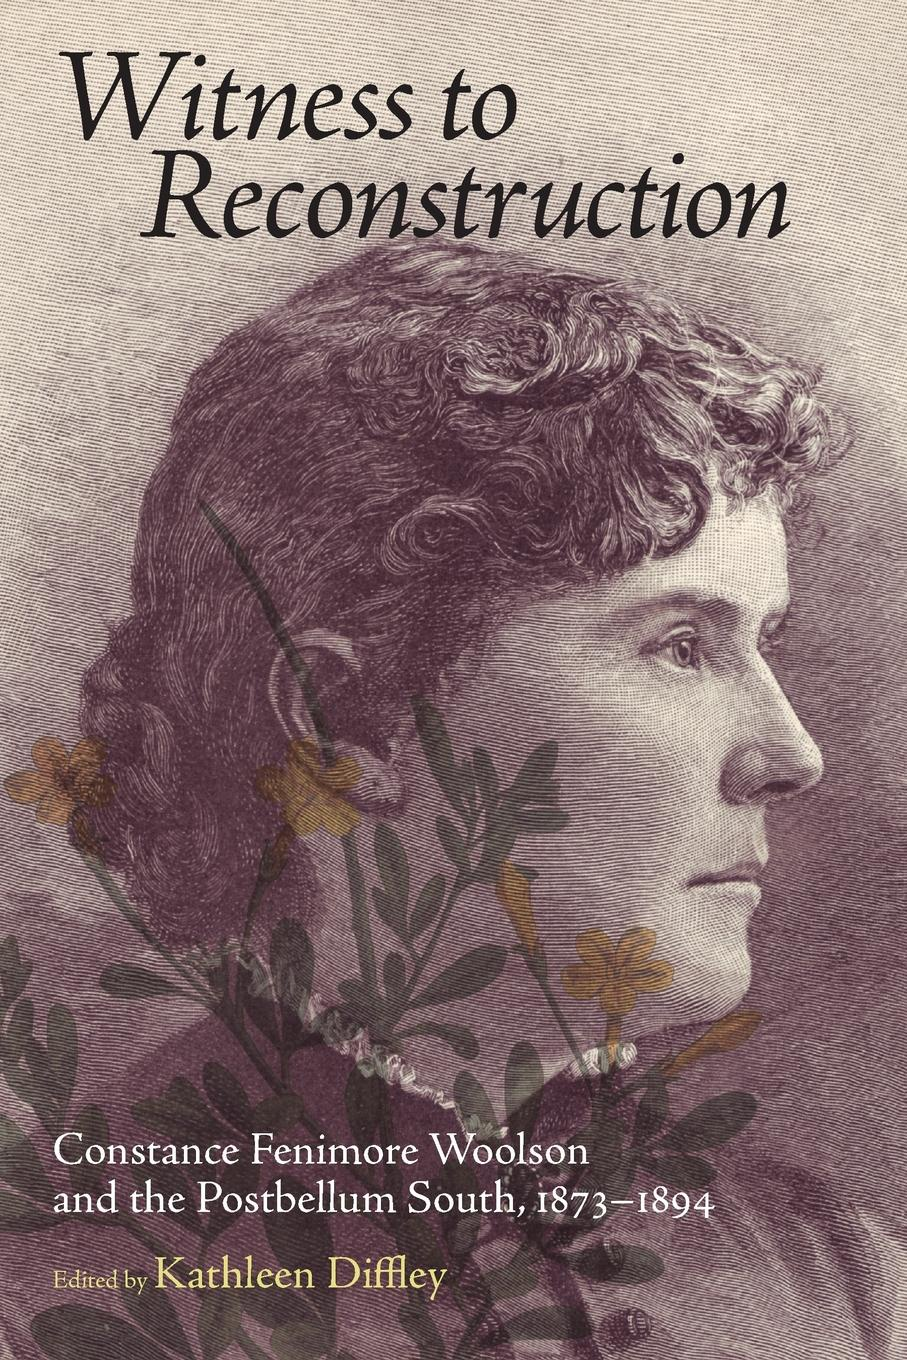 цена Witness to Reconstruction. Constance Fenimore Woolson and the Postbellum South, 1873-1894 онлайн в 2017 году